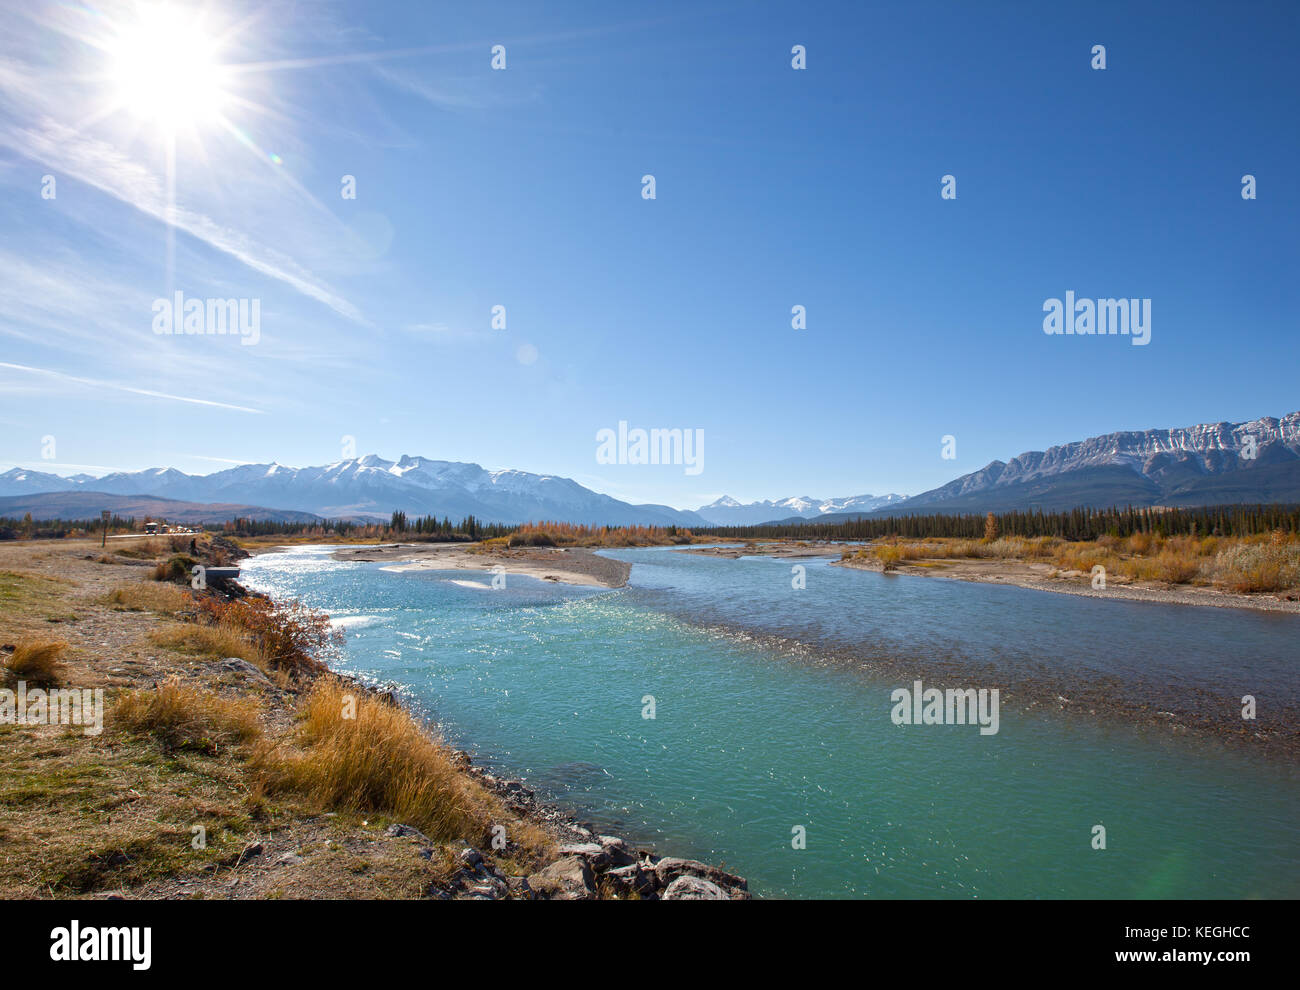 the turquoise Athabasca river with blue sky and sun flare in Jasper National Park, Alberta - Stock Image